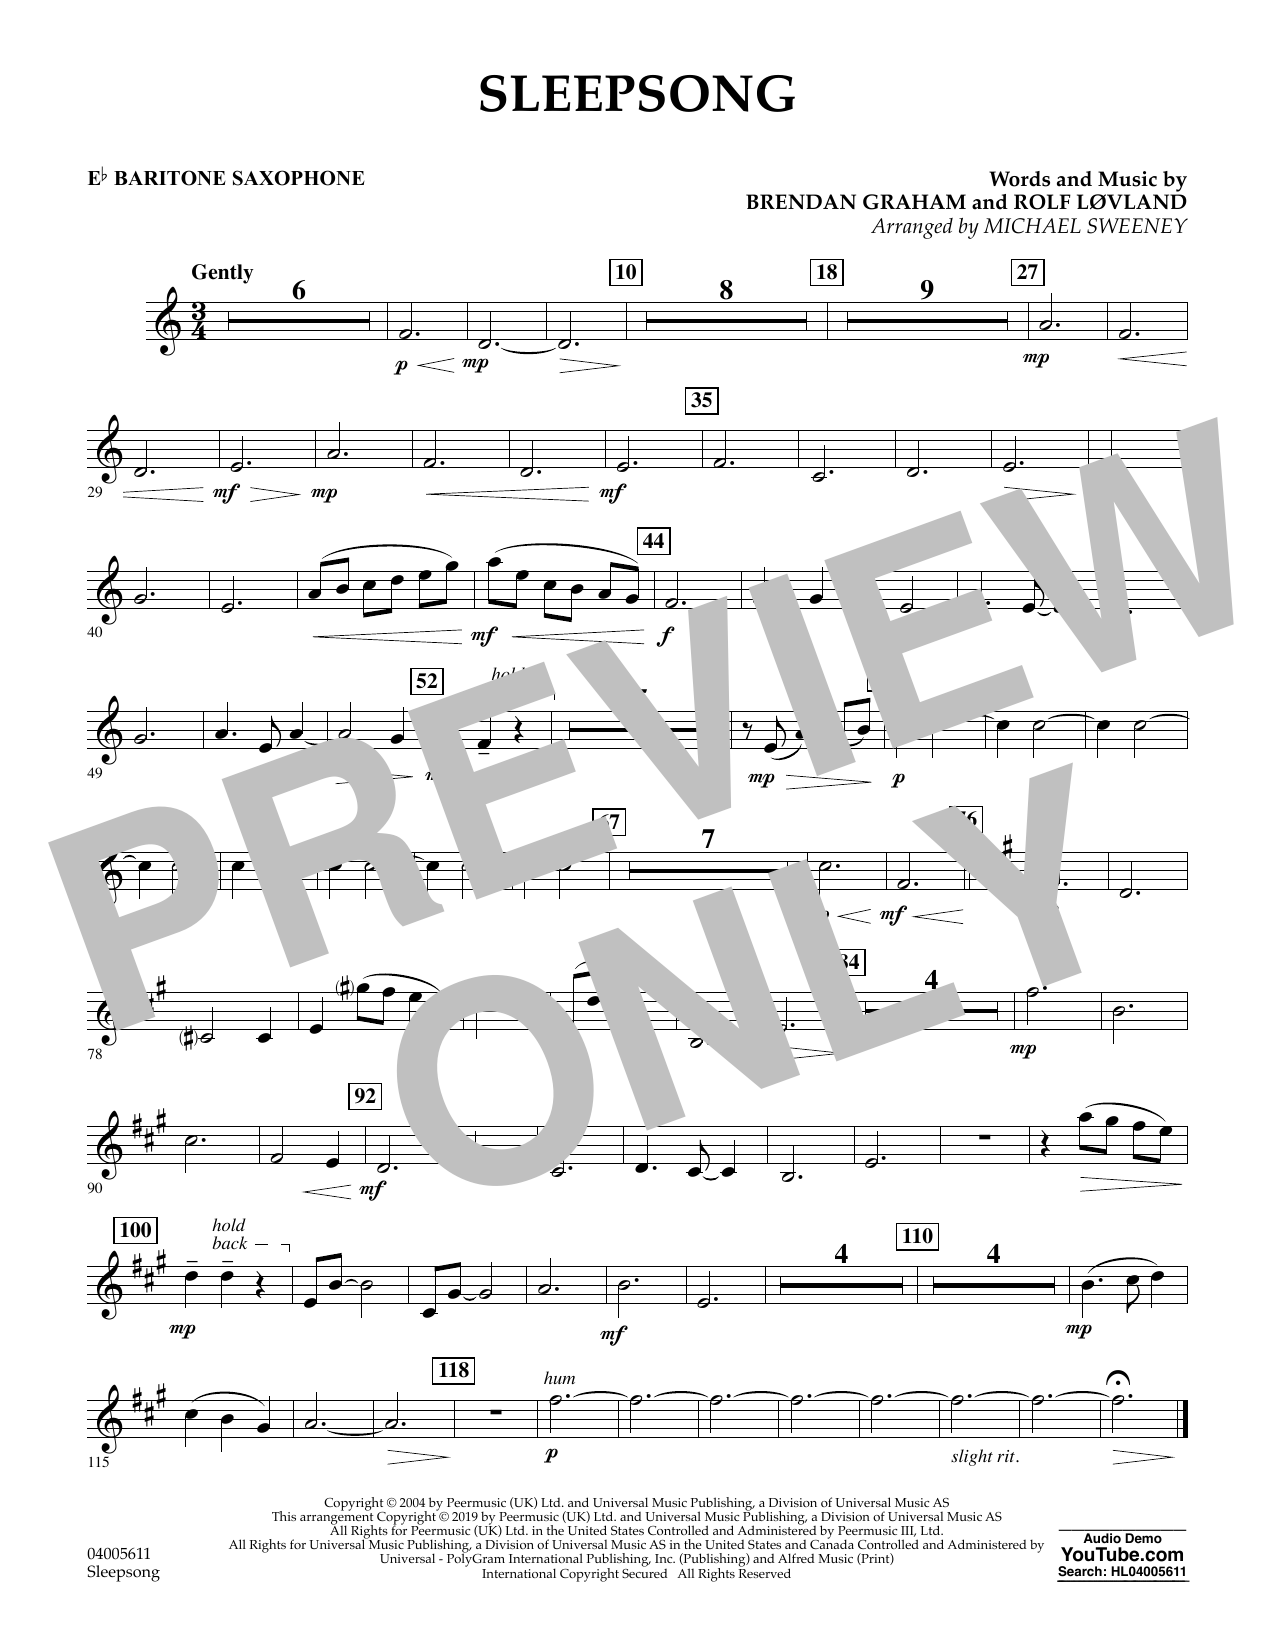 Secret Garden Sleepsong (arr. Michael Sweeney) - Eb Baritone Saxophone sheet music preview music notes and score for Concert Band including 1 page(s)